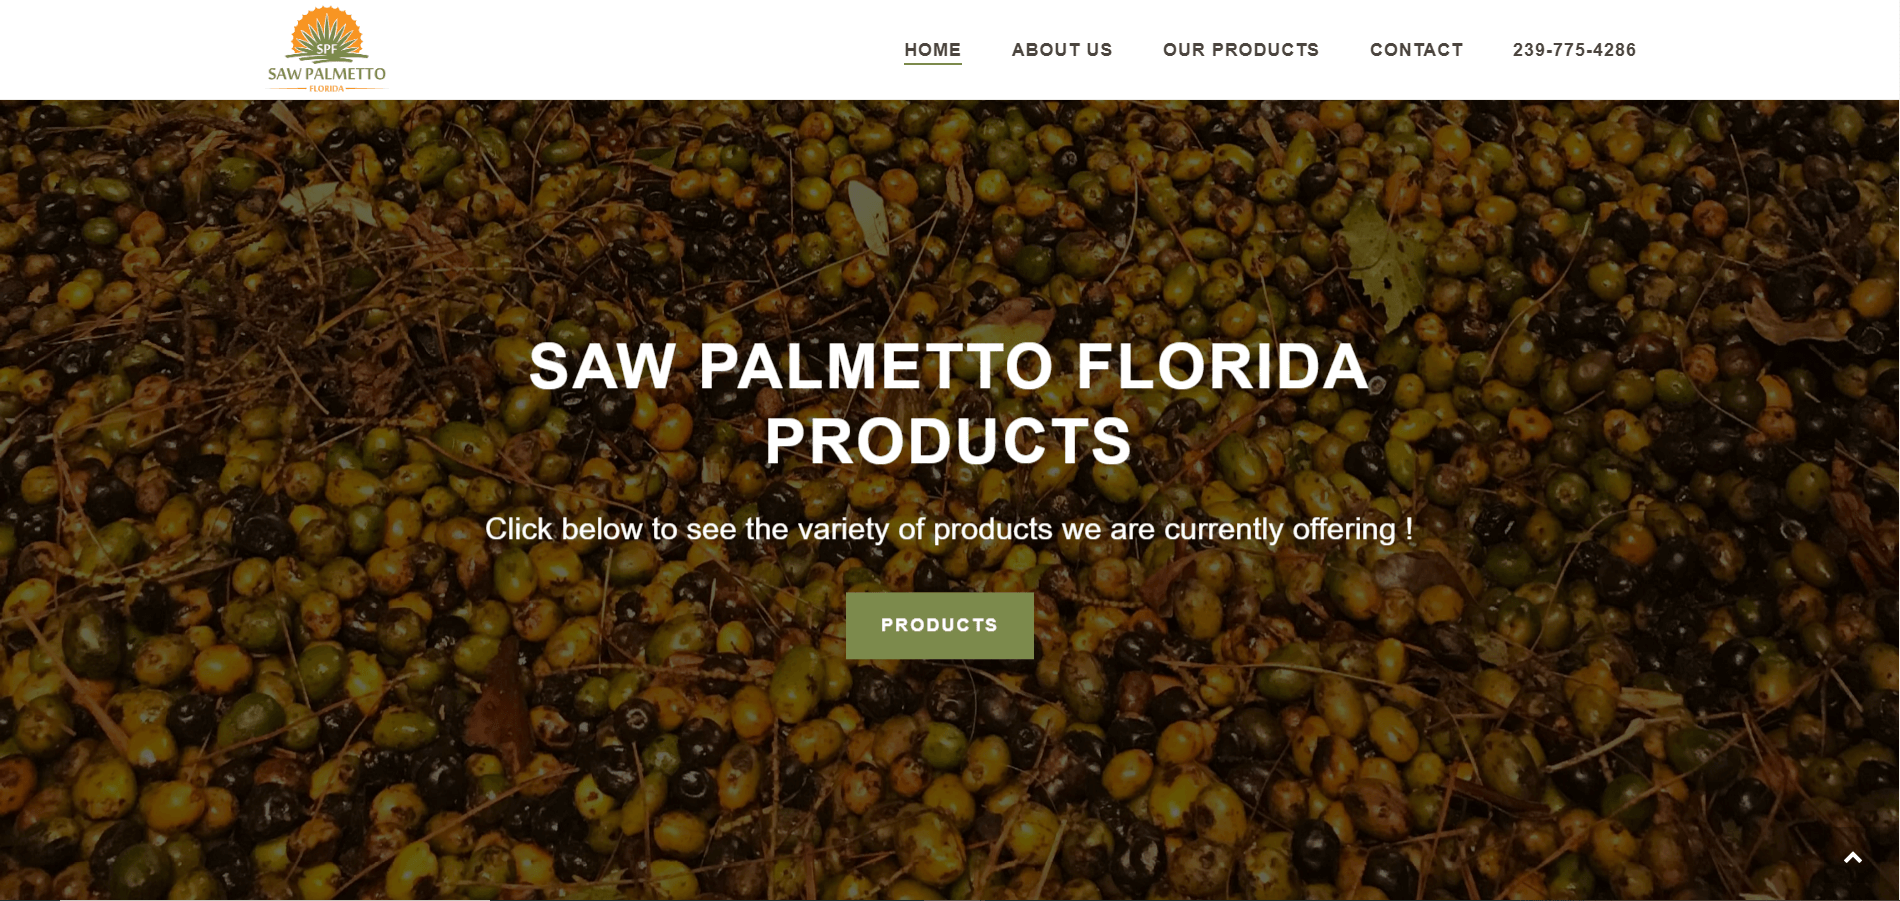 saw palmetto florida products page